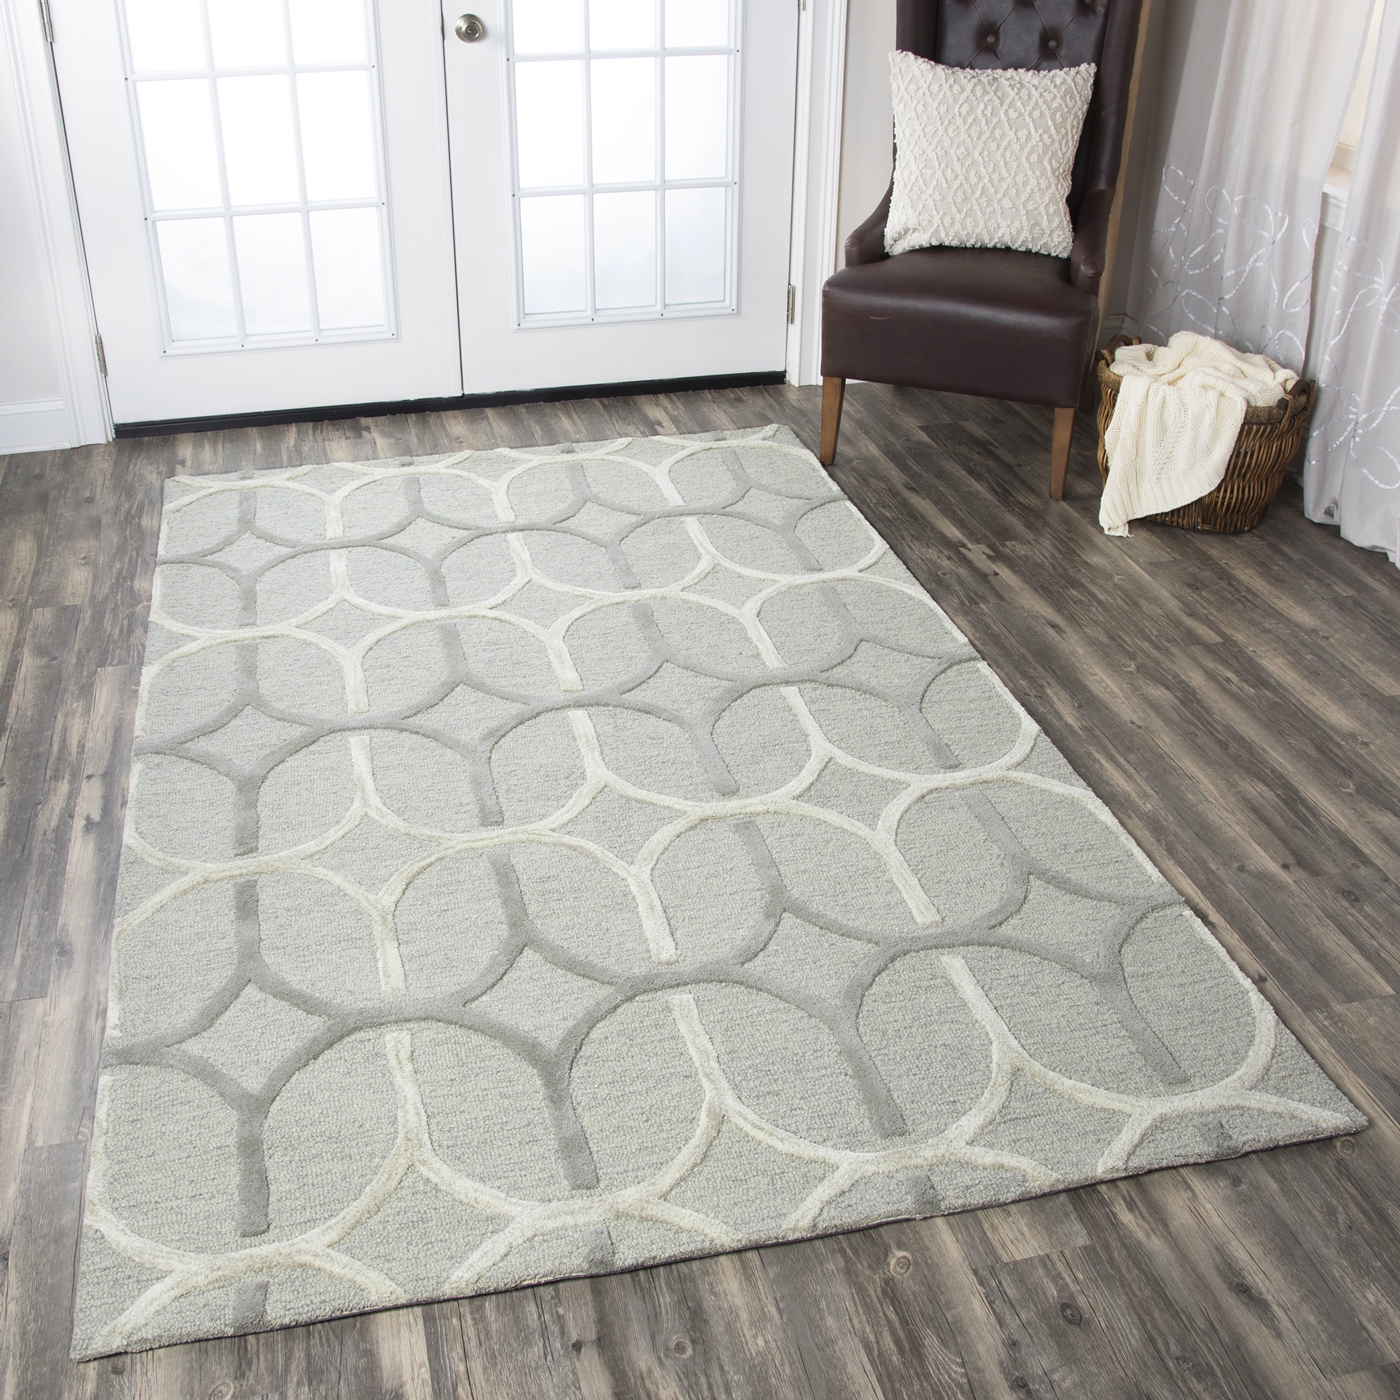 Caterine Oval Pattern Wool Area Rug In Grey & Offwhite, 5